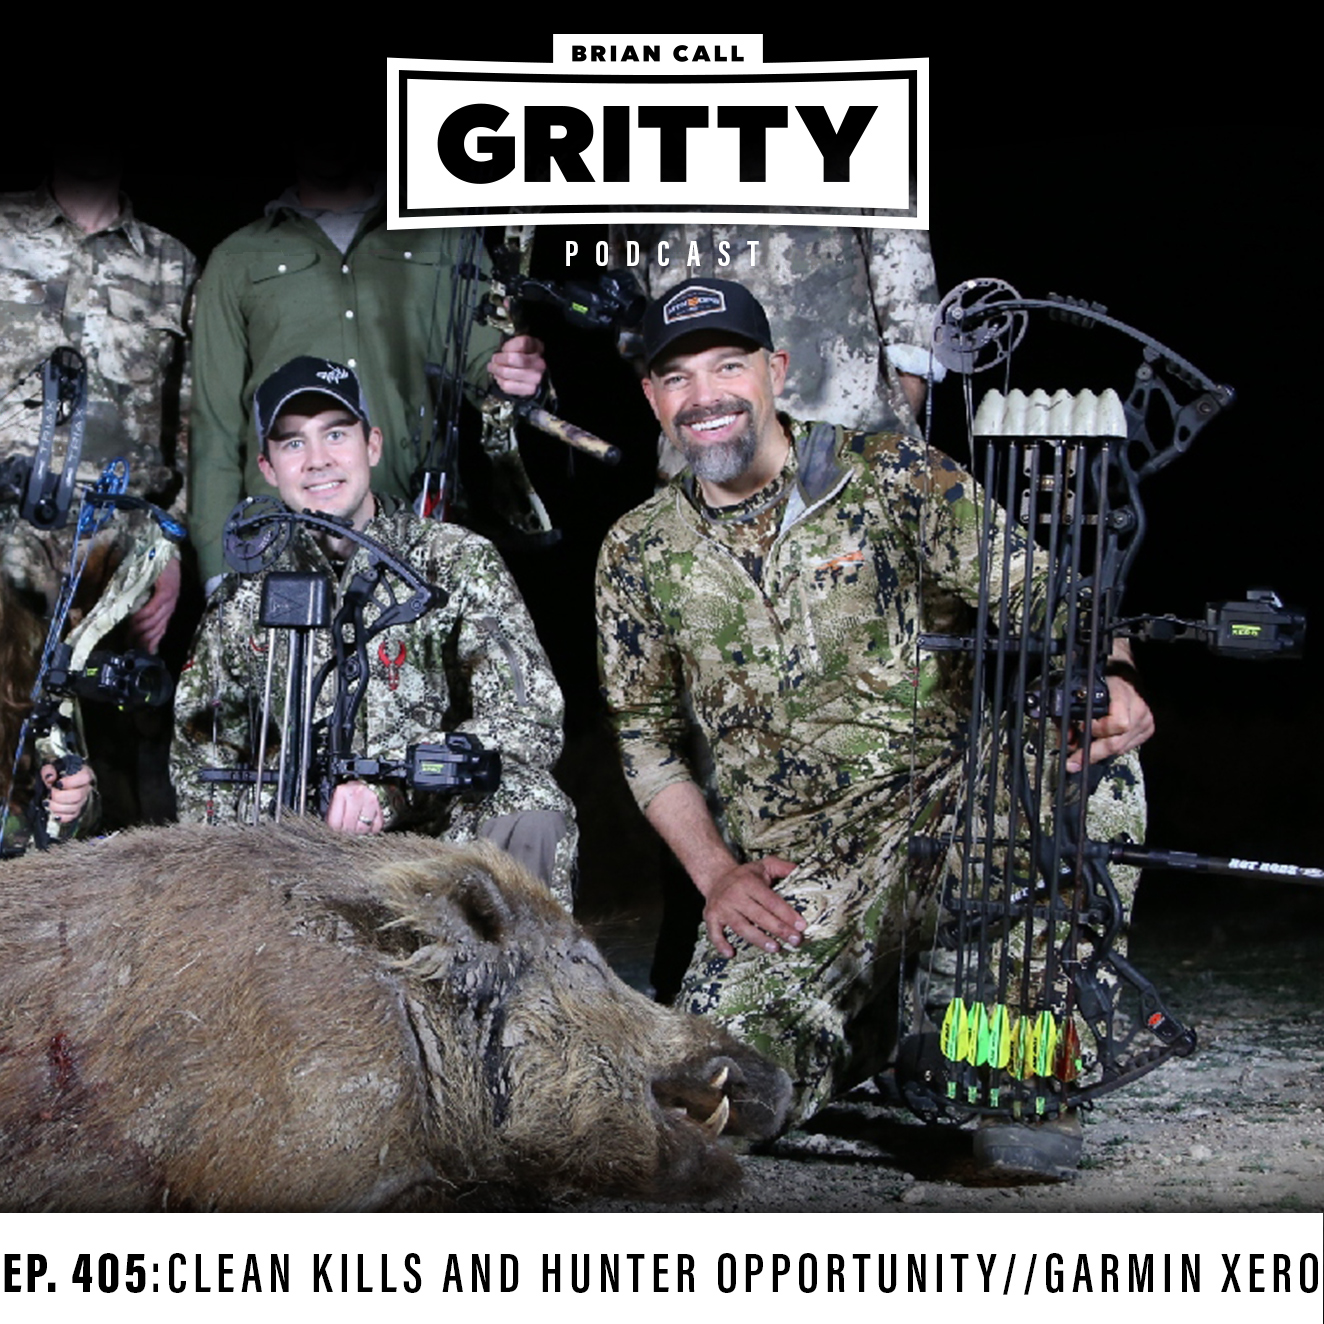 EP. 405: CLEAN KILLS AND HUNTER OPPORTUNITY WITH THE GARMIN XERO